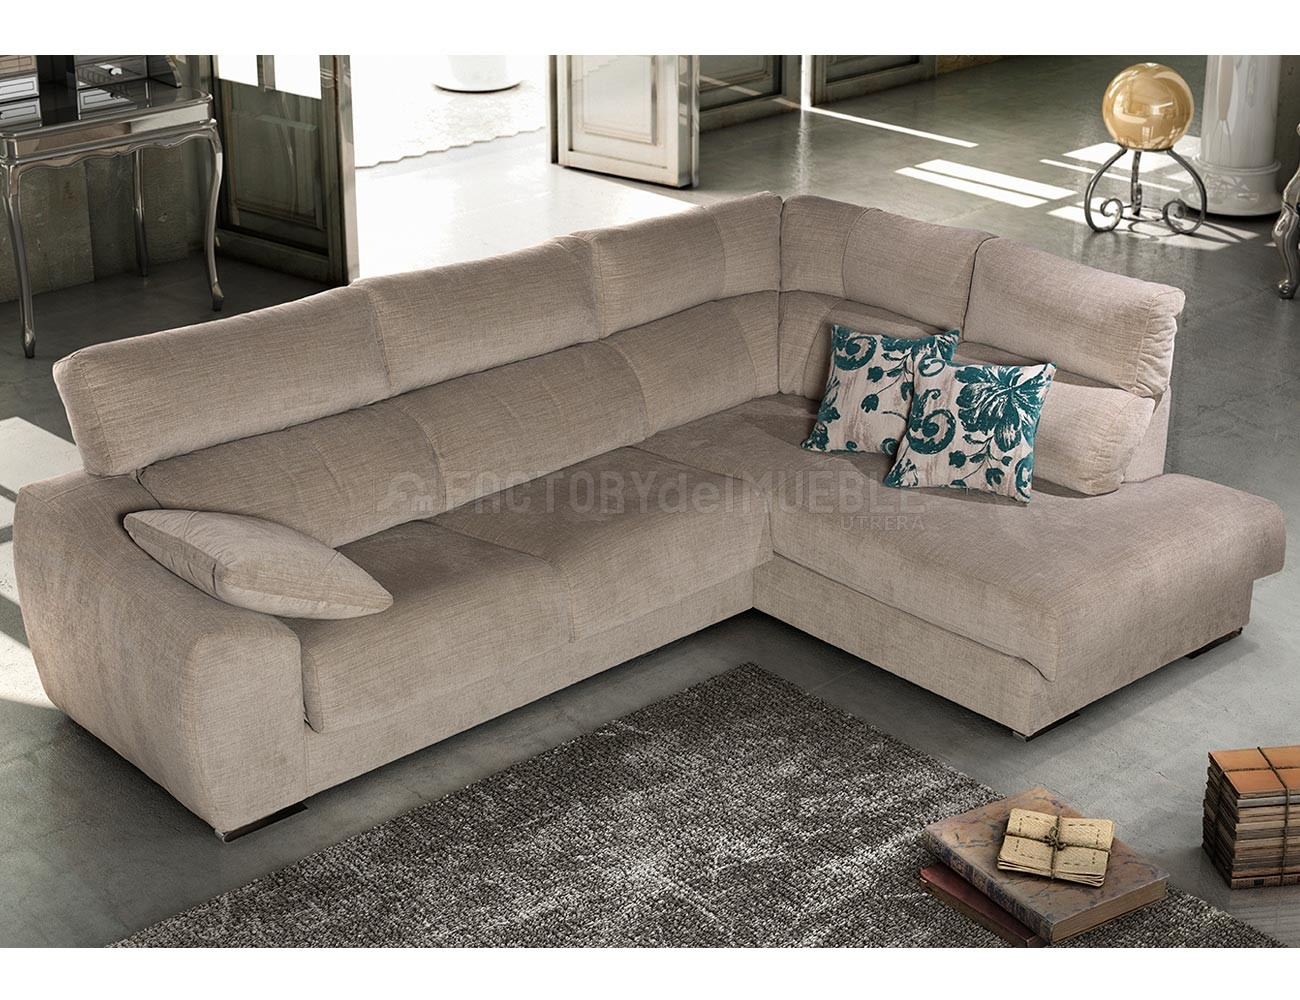 Sofa chaiselongue rincon moderno forma15